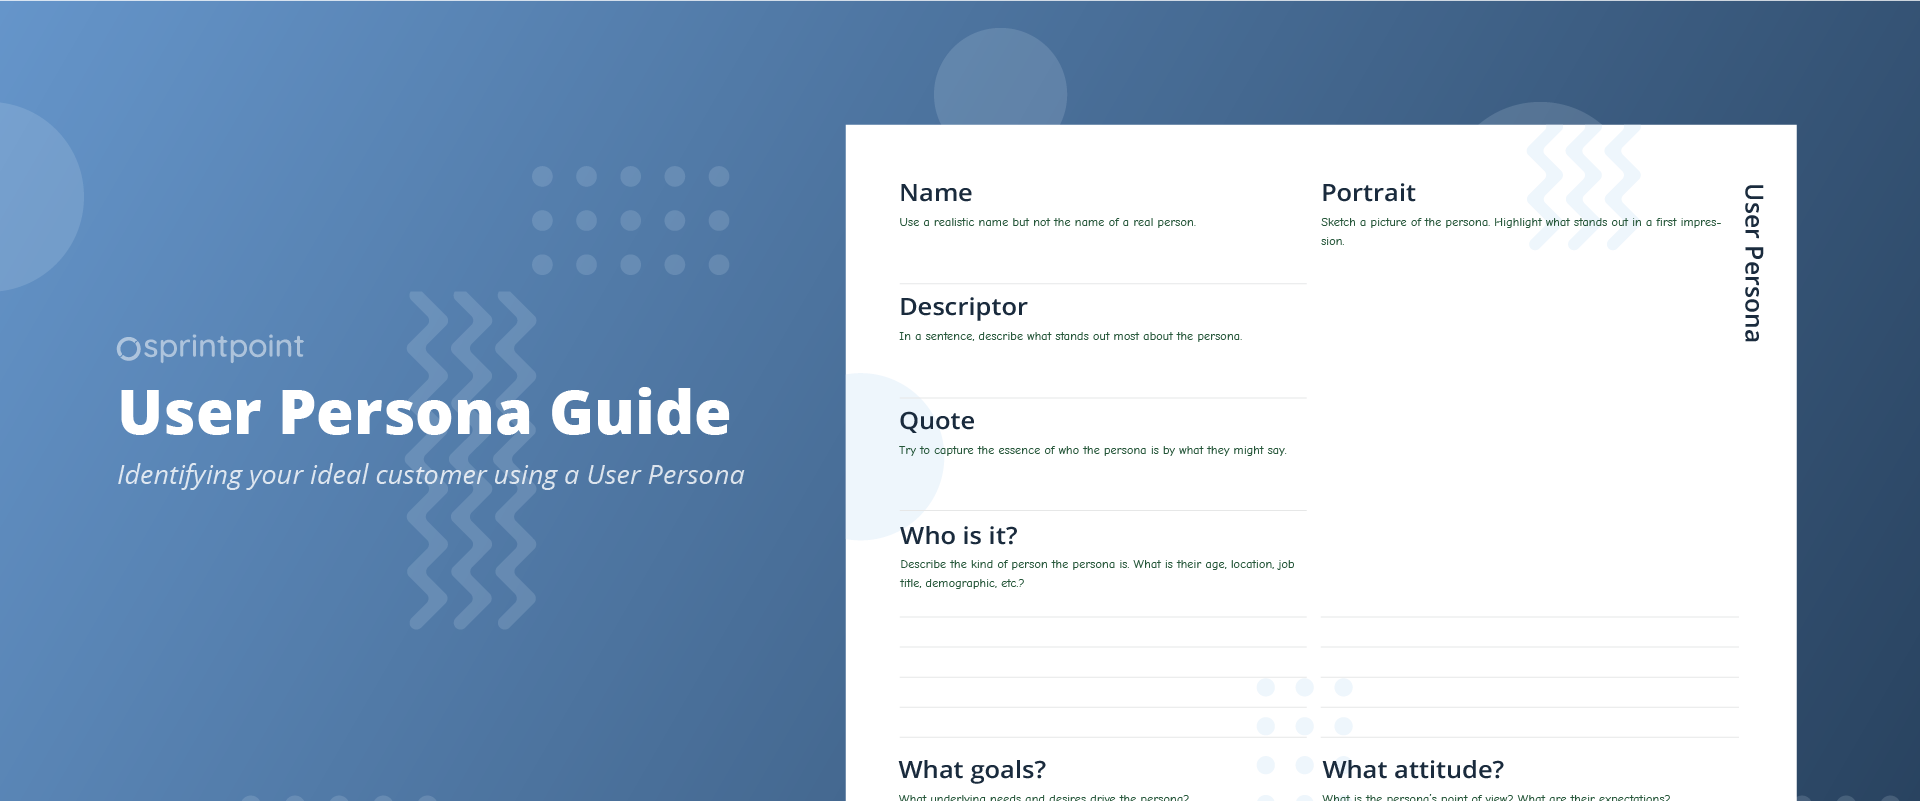 Guide - Identifying your ideal customer using a User Persona